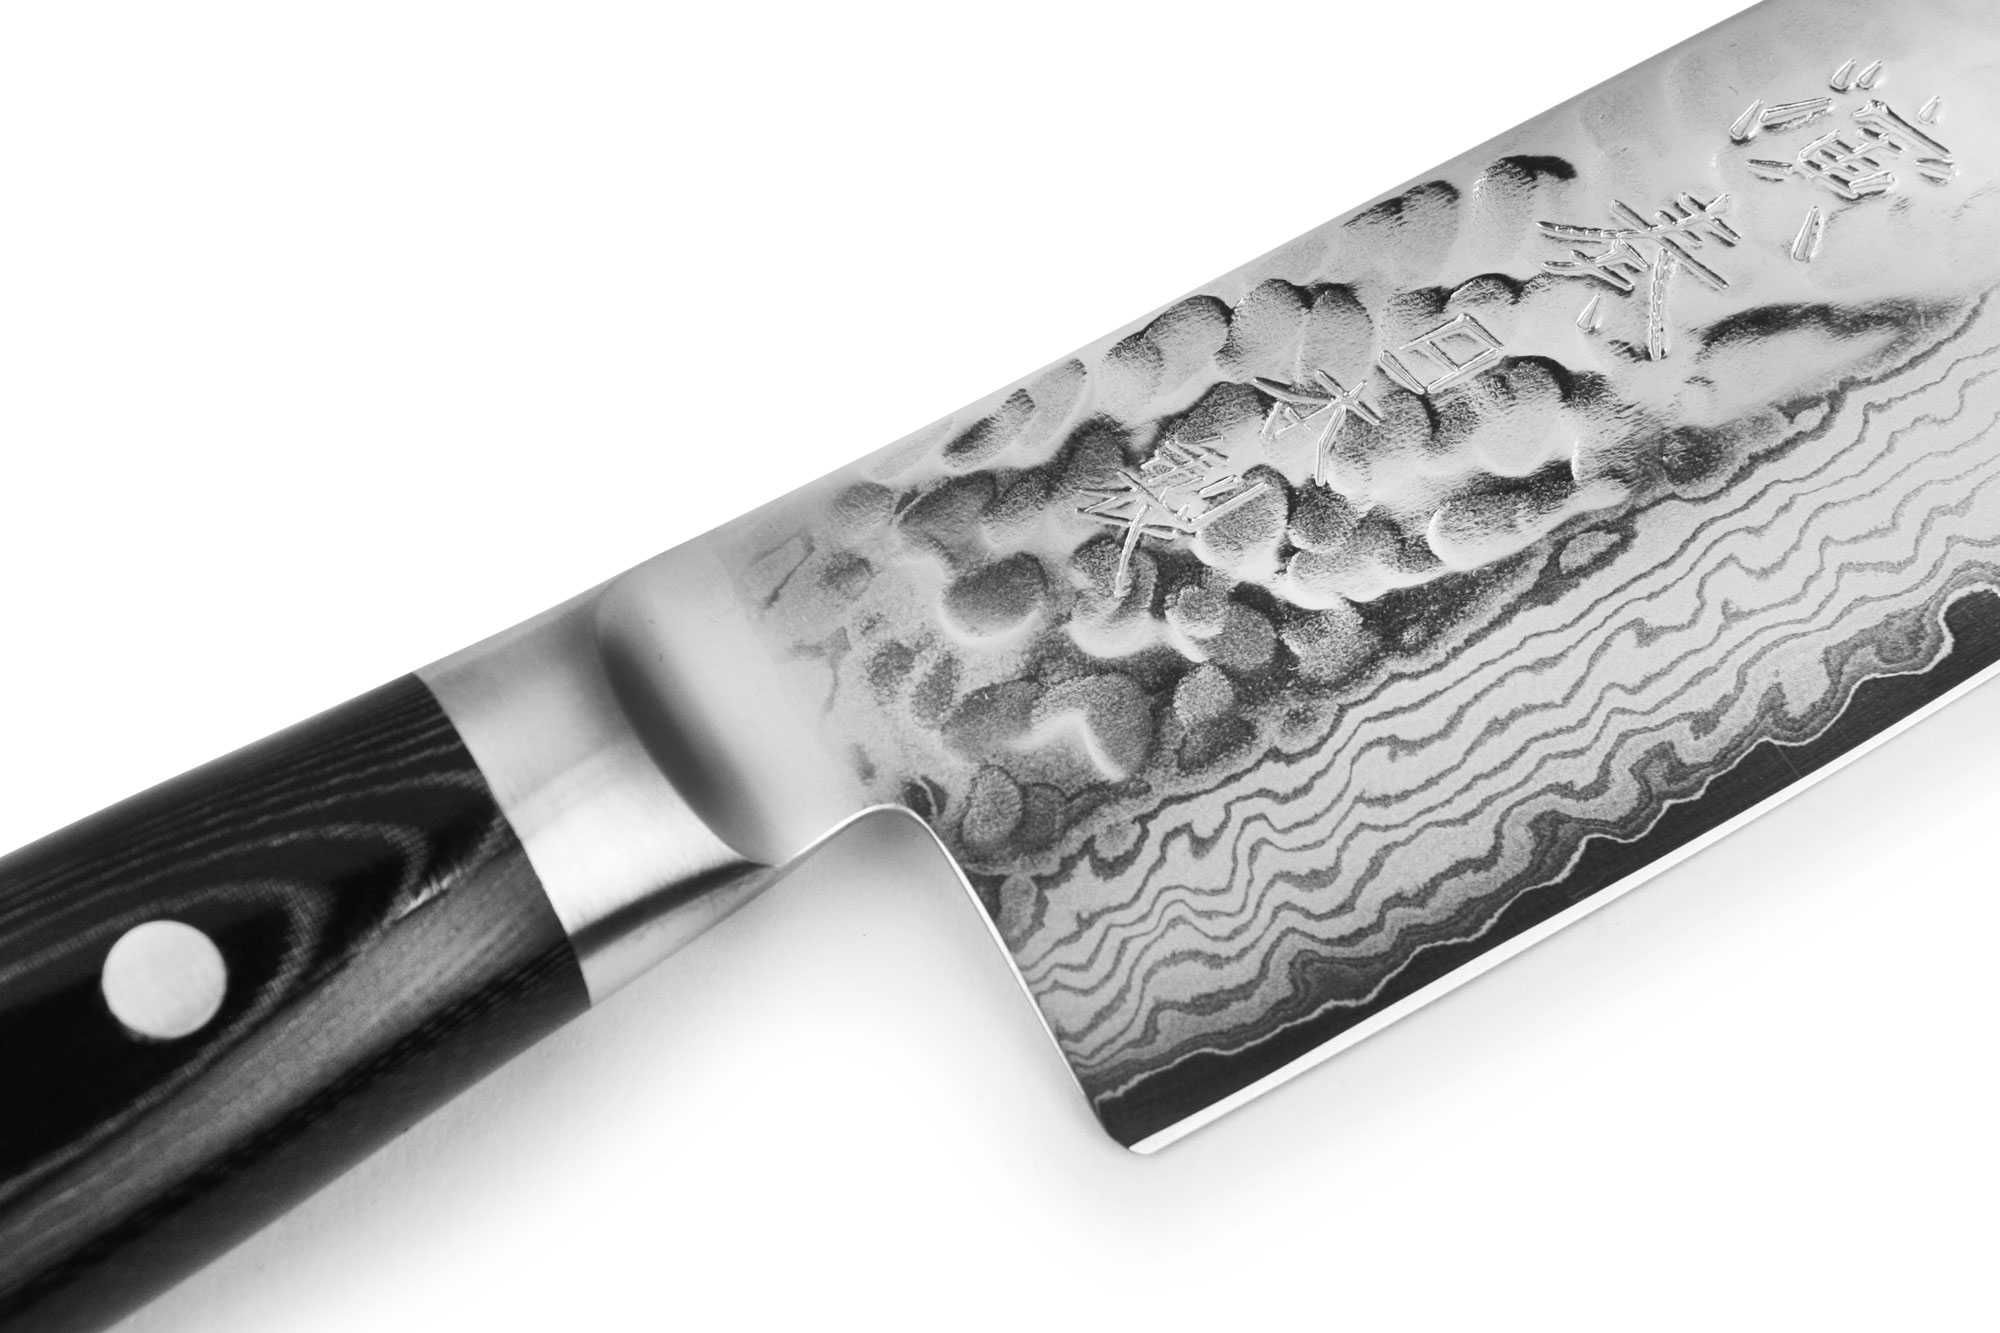 Enso Hd Hammered Damascus Japanese Chef S Knife Set 2